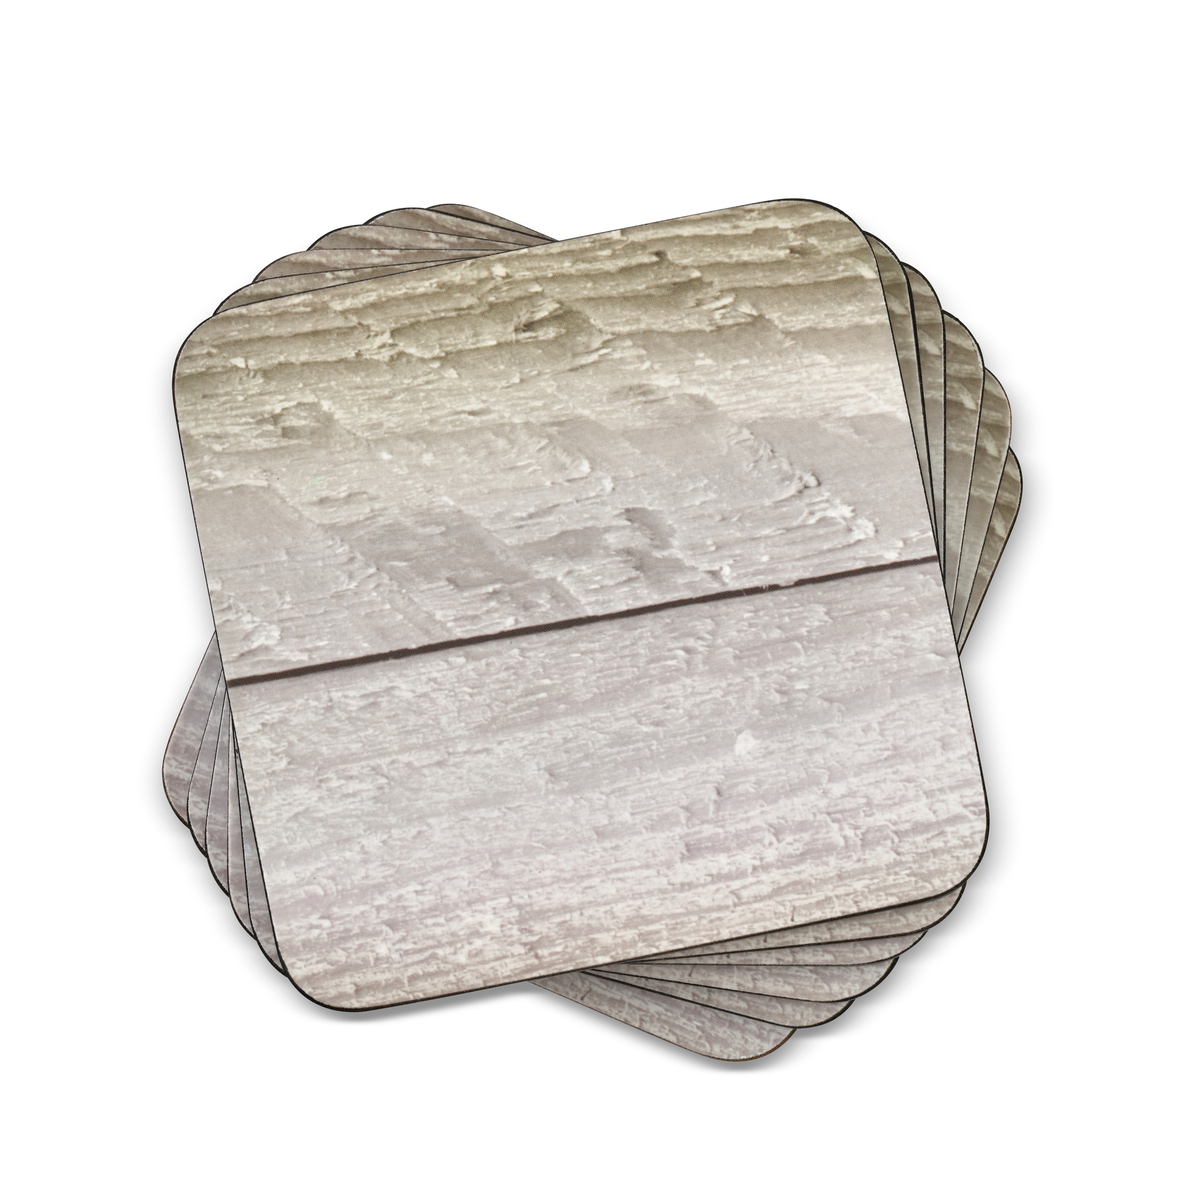 Pimpernel Driftwood Coasters Set of 6 image number 0